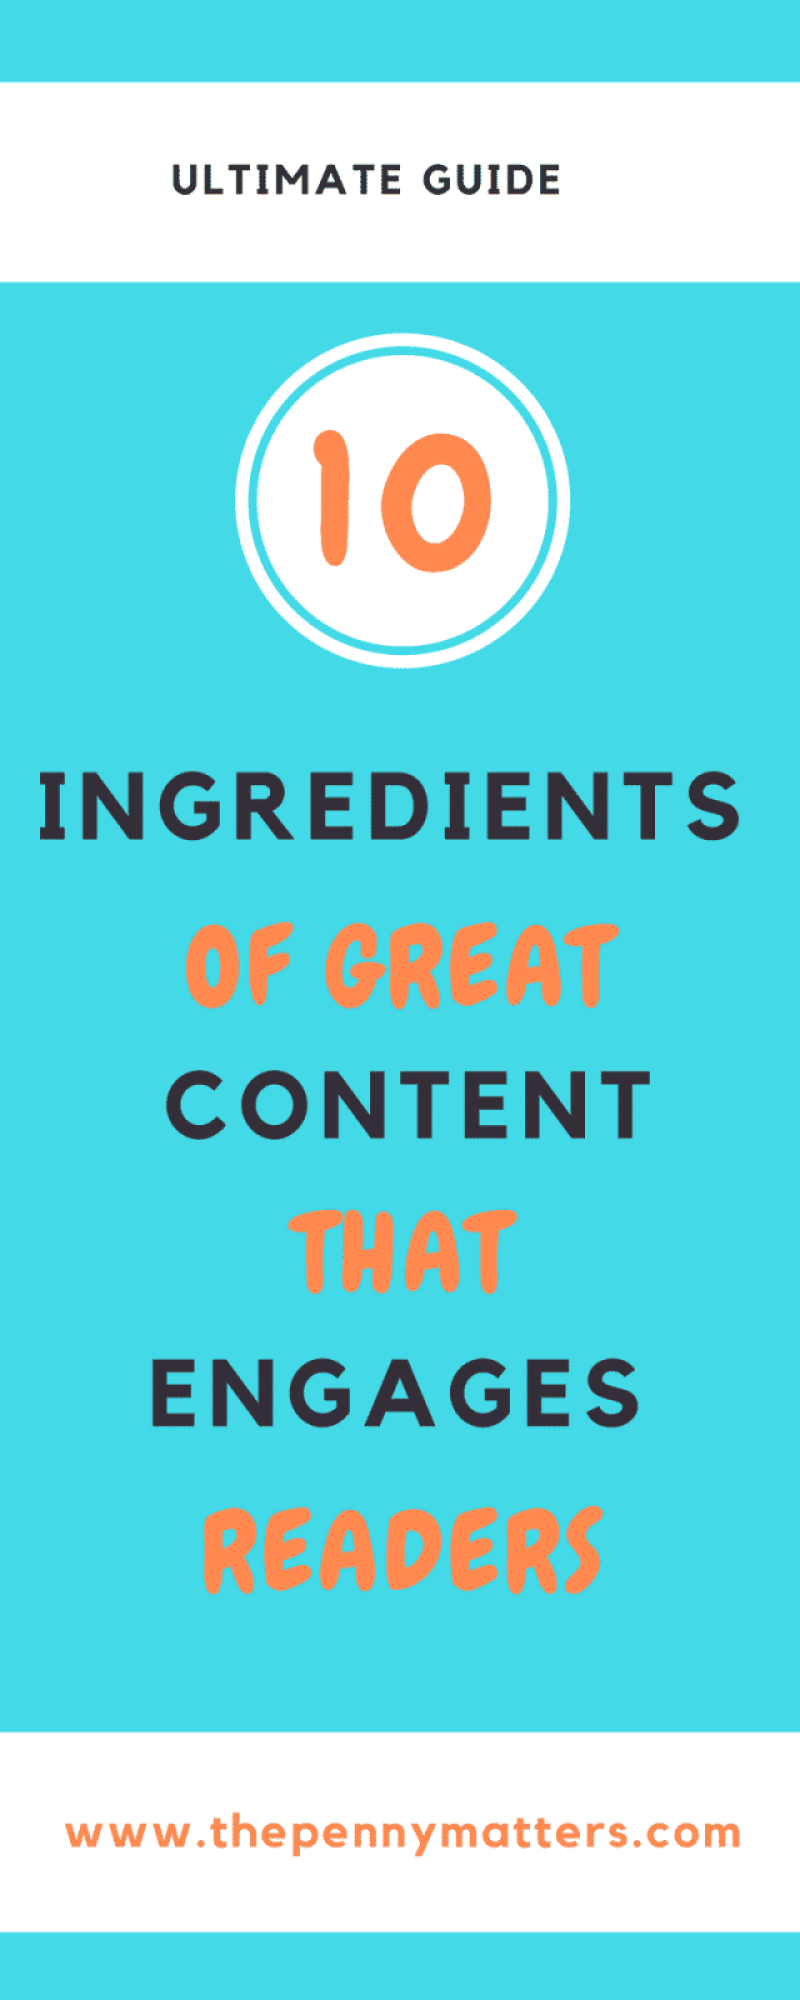 Ten Ingredients of Great Content That Engages Readers